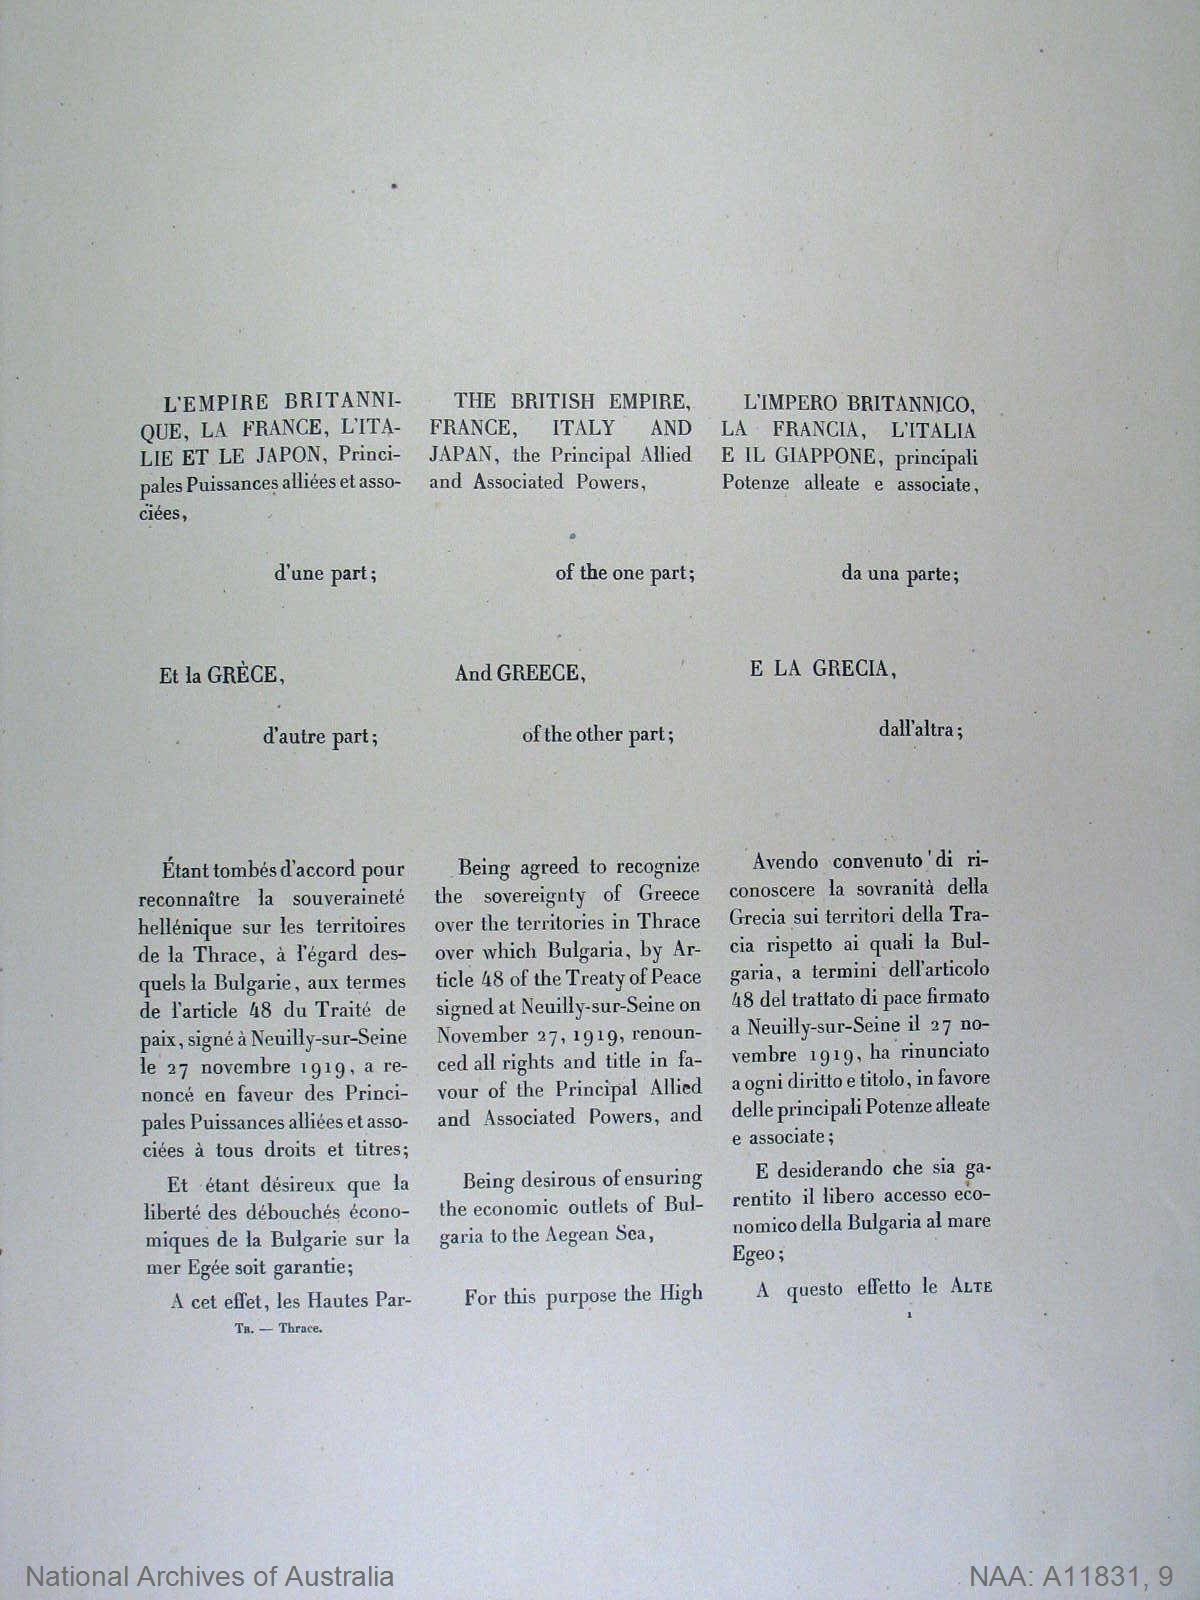 [Agreement between the British Empire, France, Italy and Japan, the Principal Allied and Associated Powers, of the one part; and Greece, of the other part, recognising the sovereignty of Greece over the territories in Thrace over which Bulgaria renounced all rights and title by Article 48 of the Treaty of Peace signed at Neuilly-sur-Seine November 27, 1919]